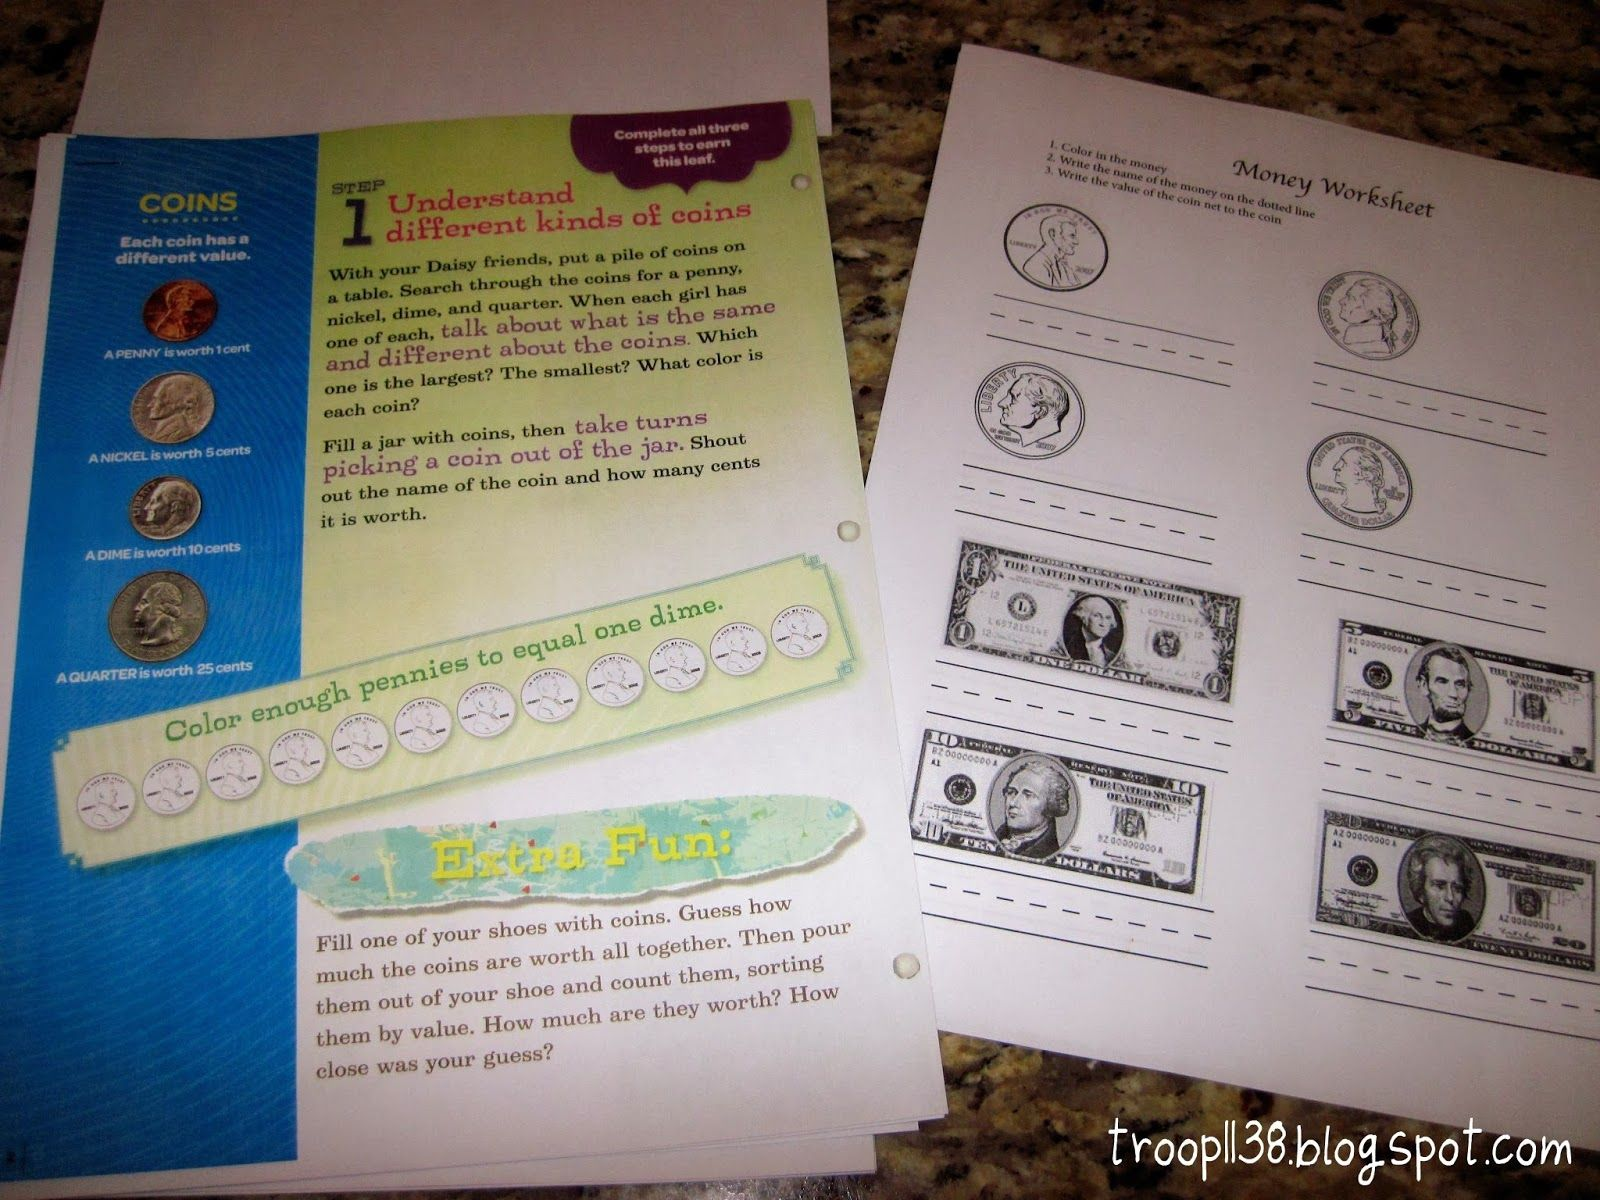 Has Link To Money Worksheet Girl Scout Troop